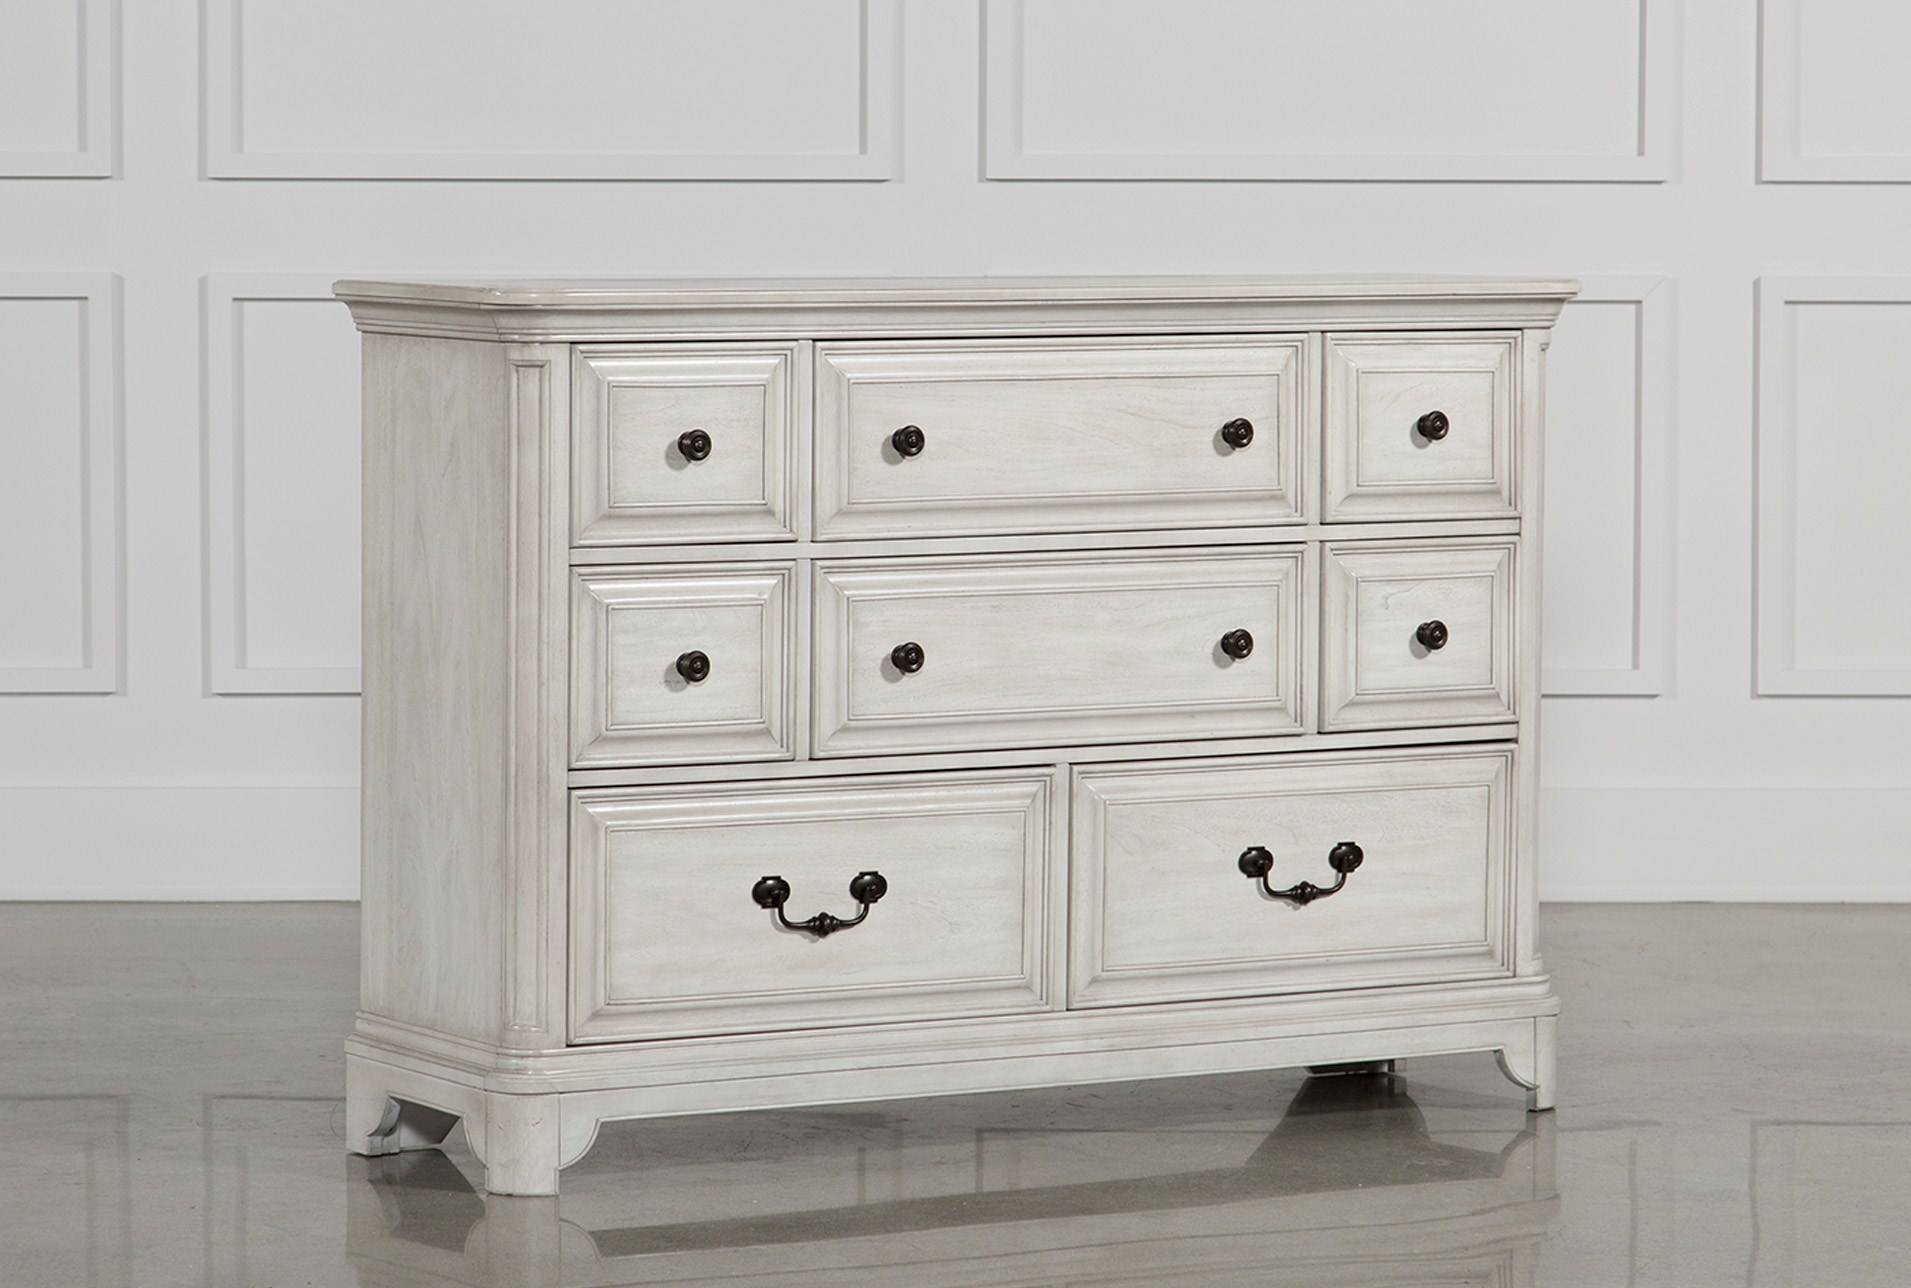 amusing kincaid bedroom furniture. Kincaid Dresser From Bedroom Furniture, Image Source: Livingspaces.com Amusing Furniture T